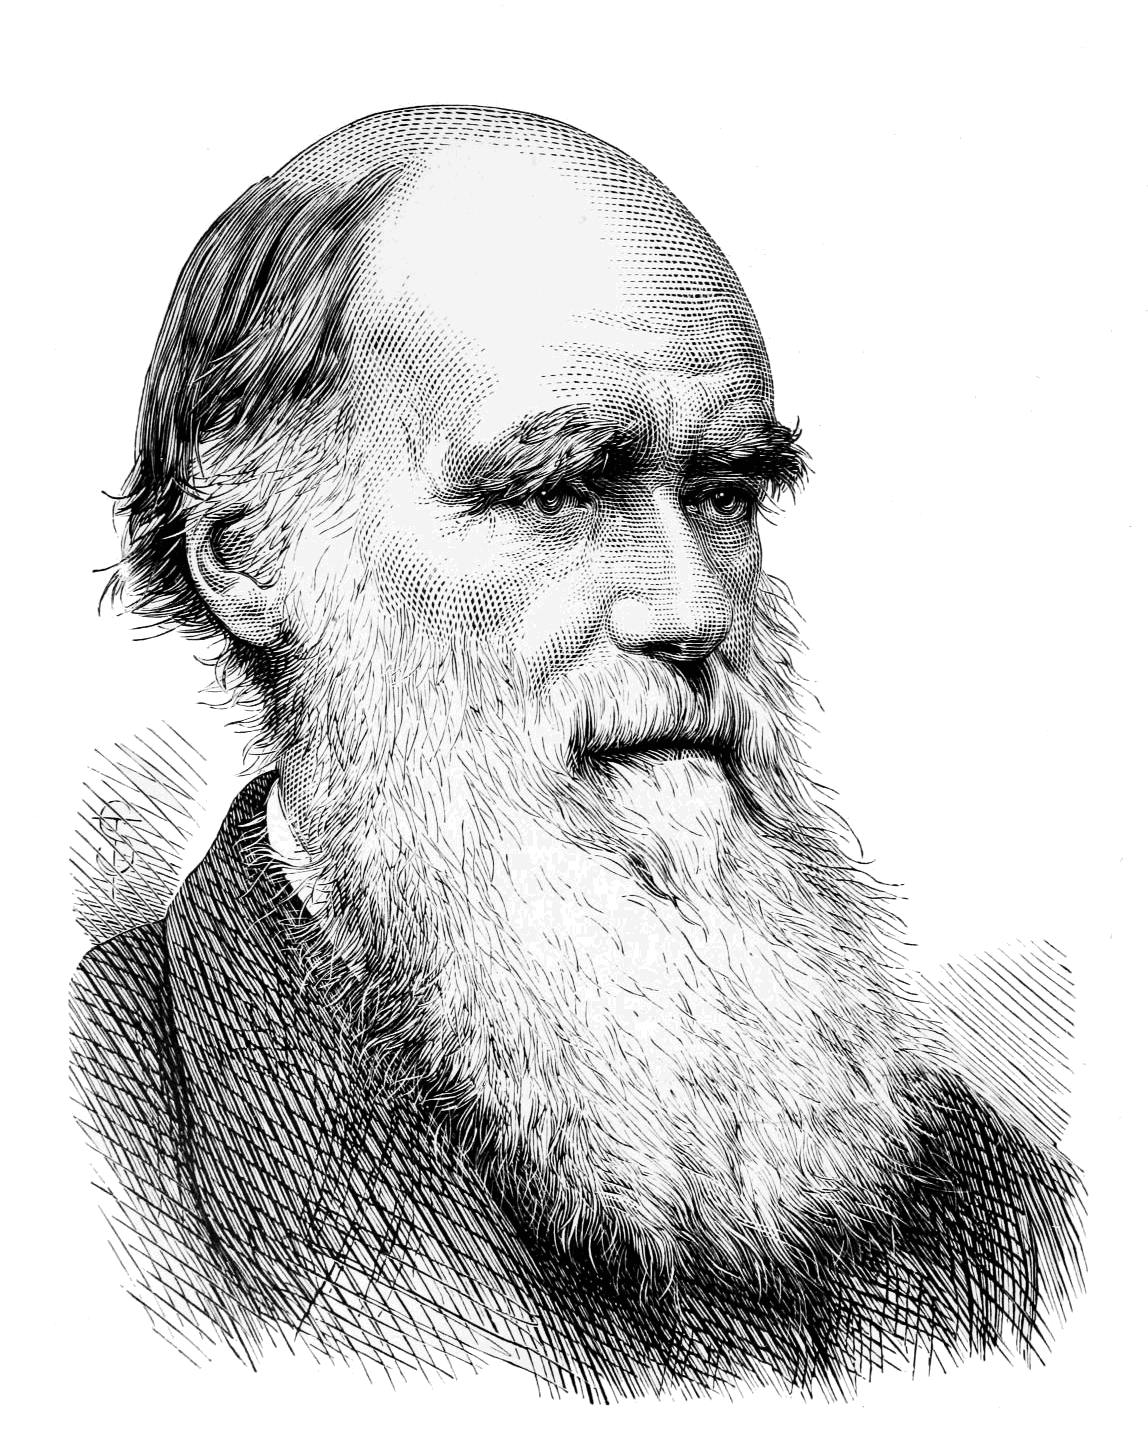 an analysis of the bookthe origin of species by charles darwin The origin of species study guide contains a biography of charles darwin, literature essays, a complete e-text, quiz questions, major themes, characters, and a full summary and analysis.